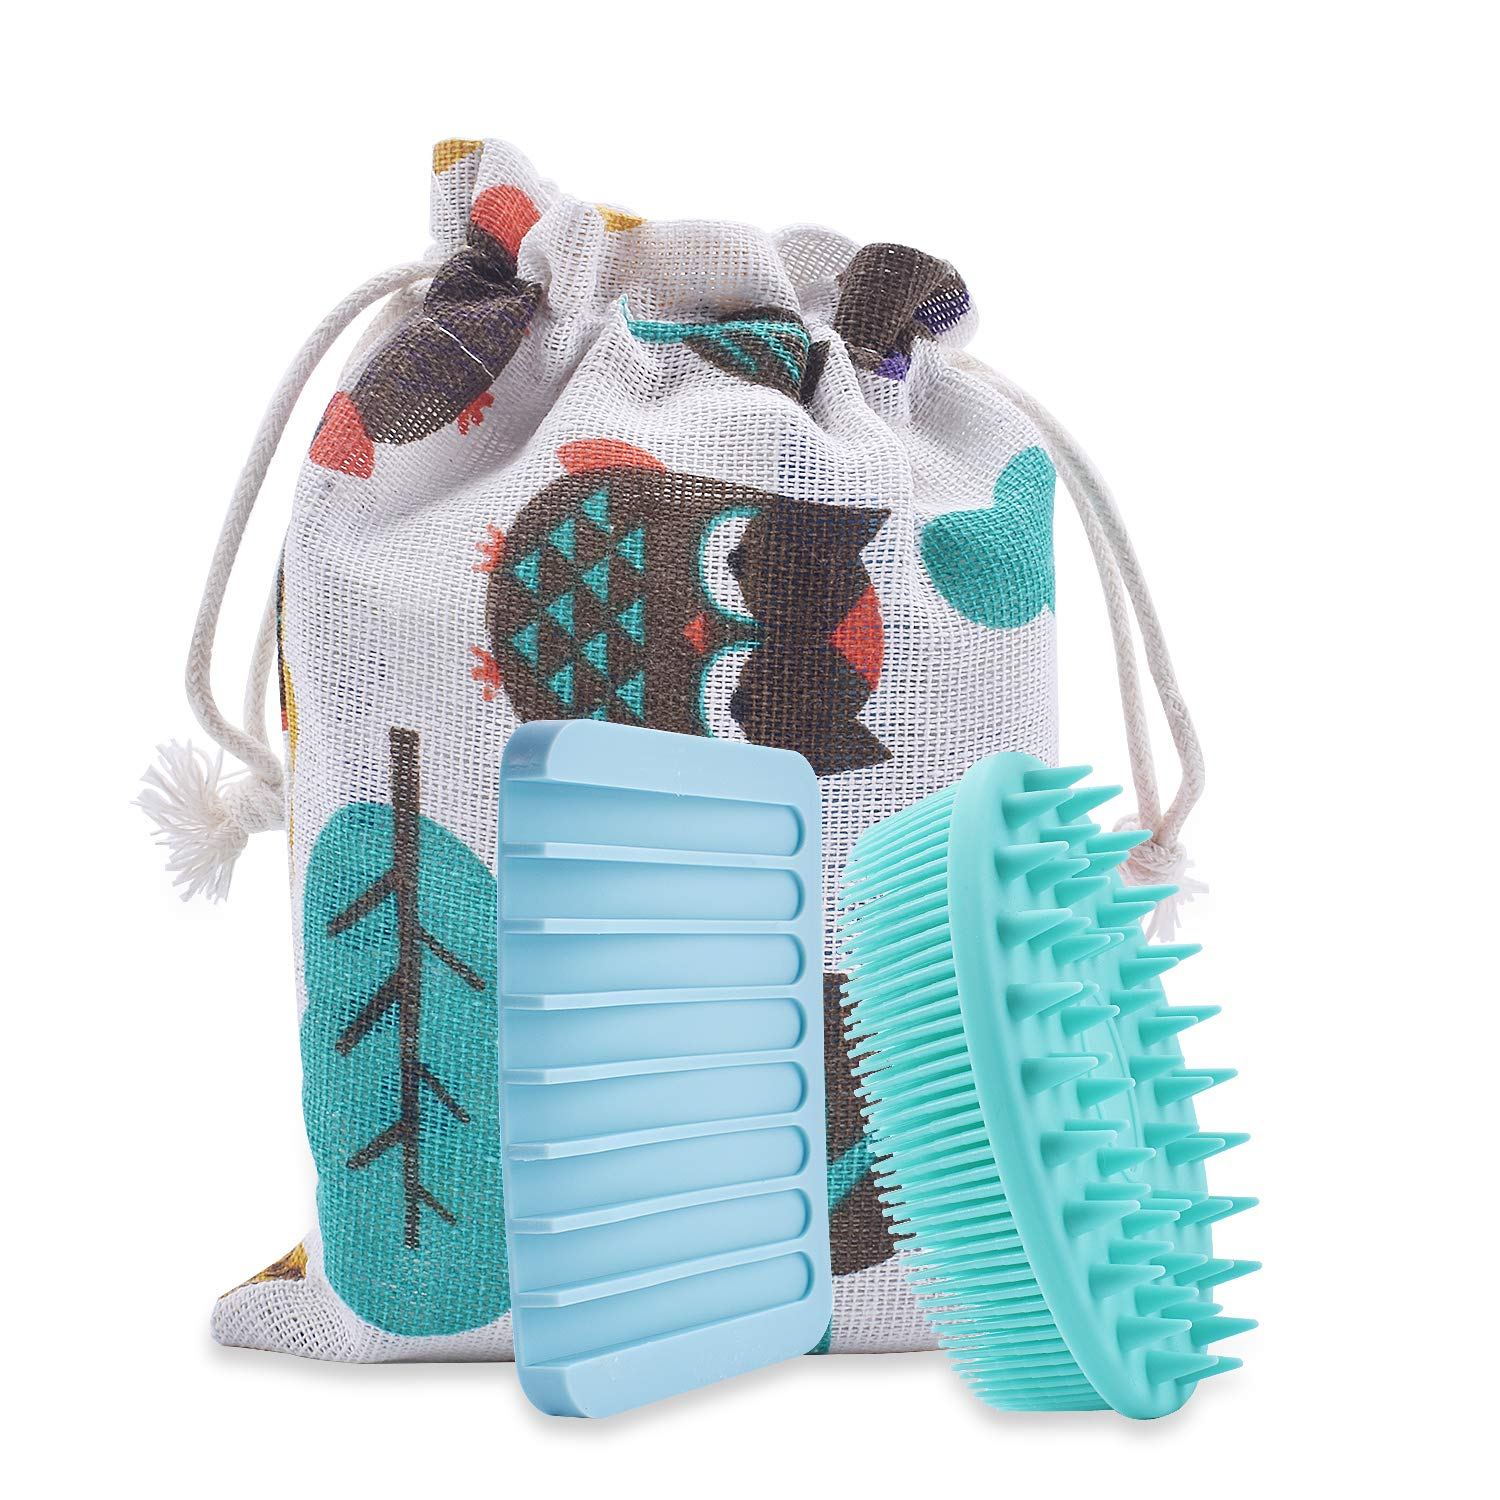 Exfoliating Soft Silicone Body Brush Ba Scrubber in Fort Worth Mall Max 77% OFF 2 1